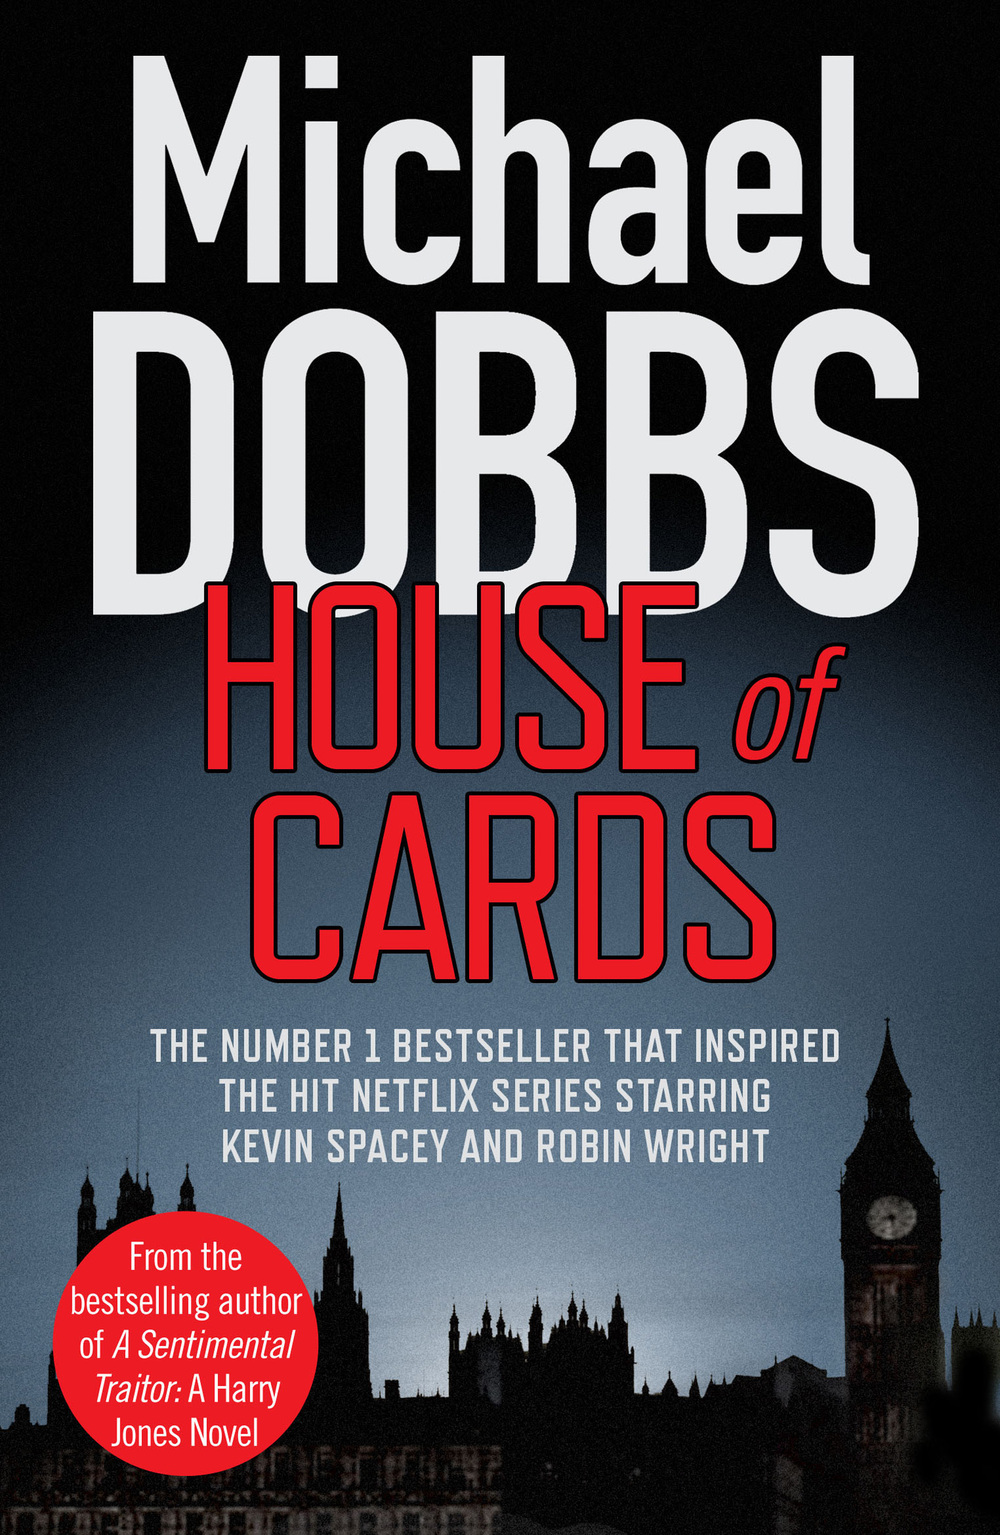 House of Cards by Michael Dobbs.jpg